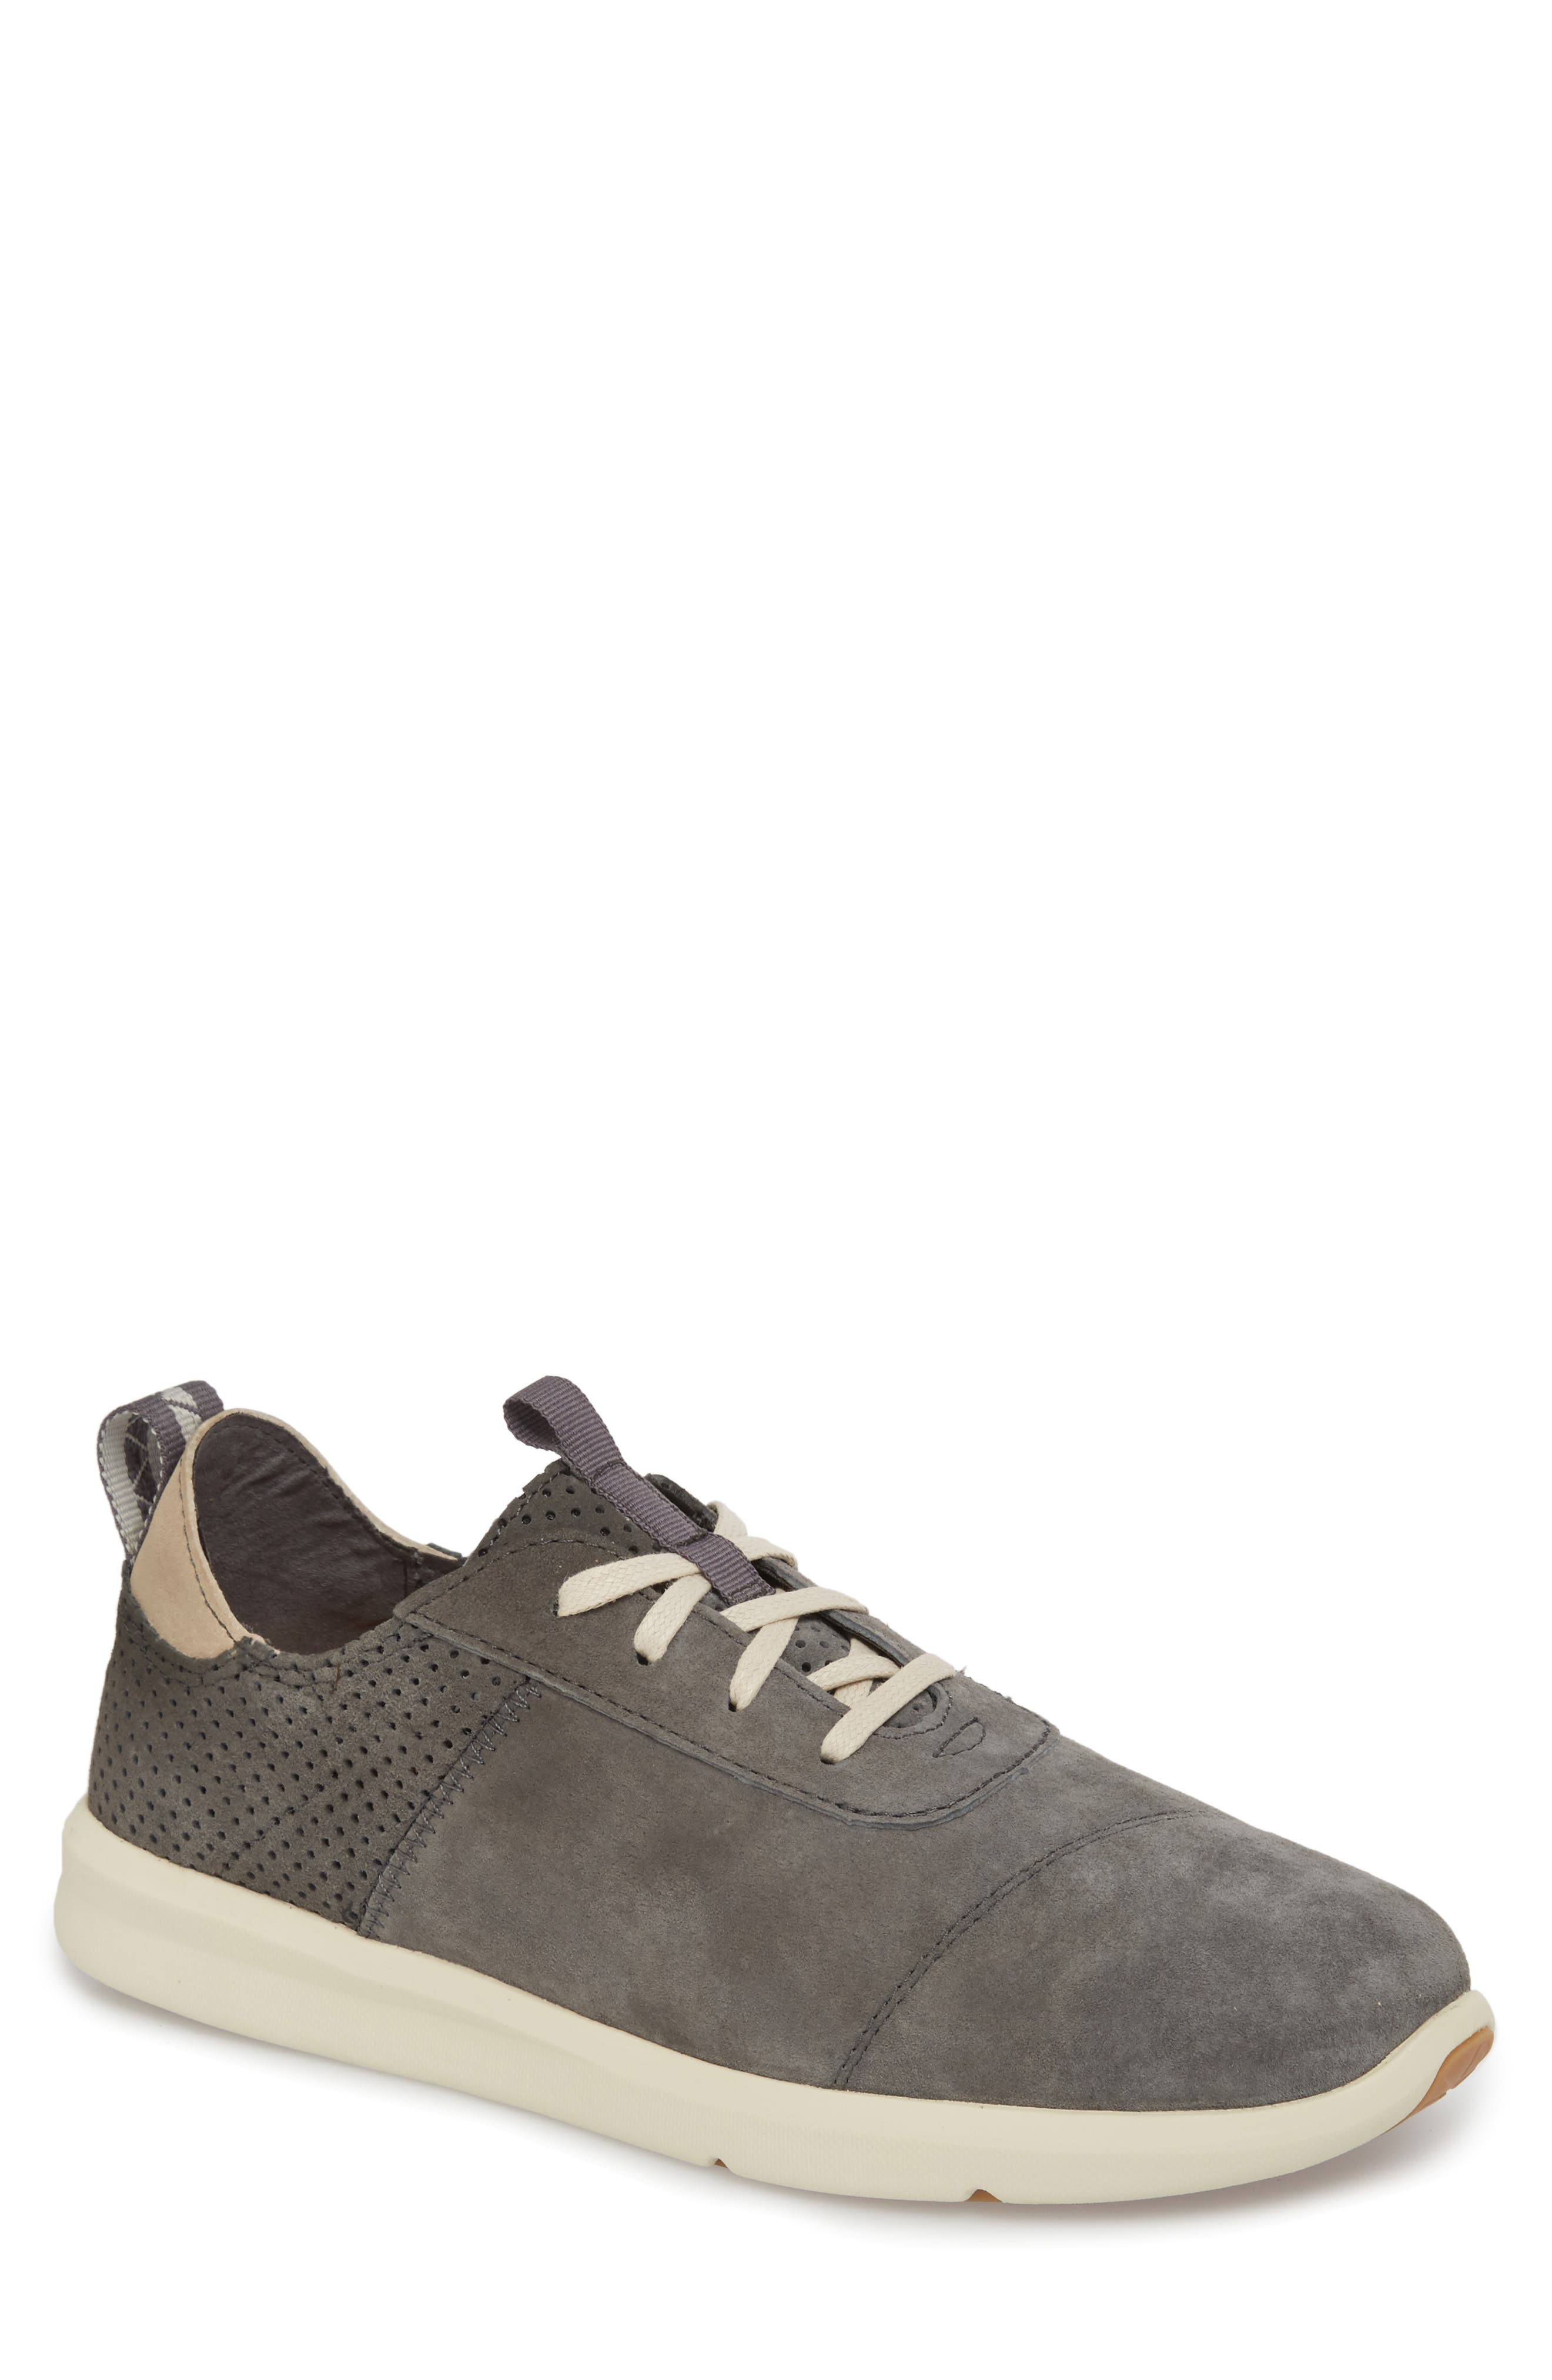 Cabrillo Perforated Low Top Sneaker,                             Main thumbnail 1, color,                             021